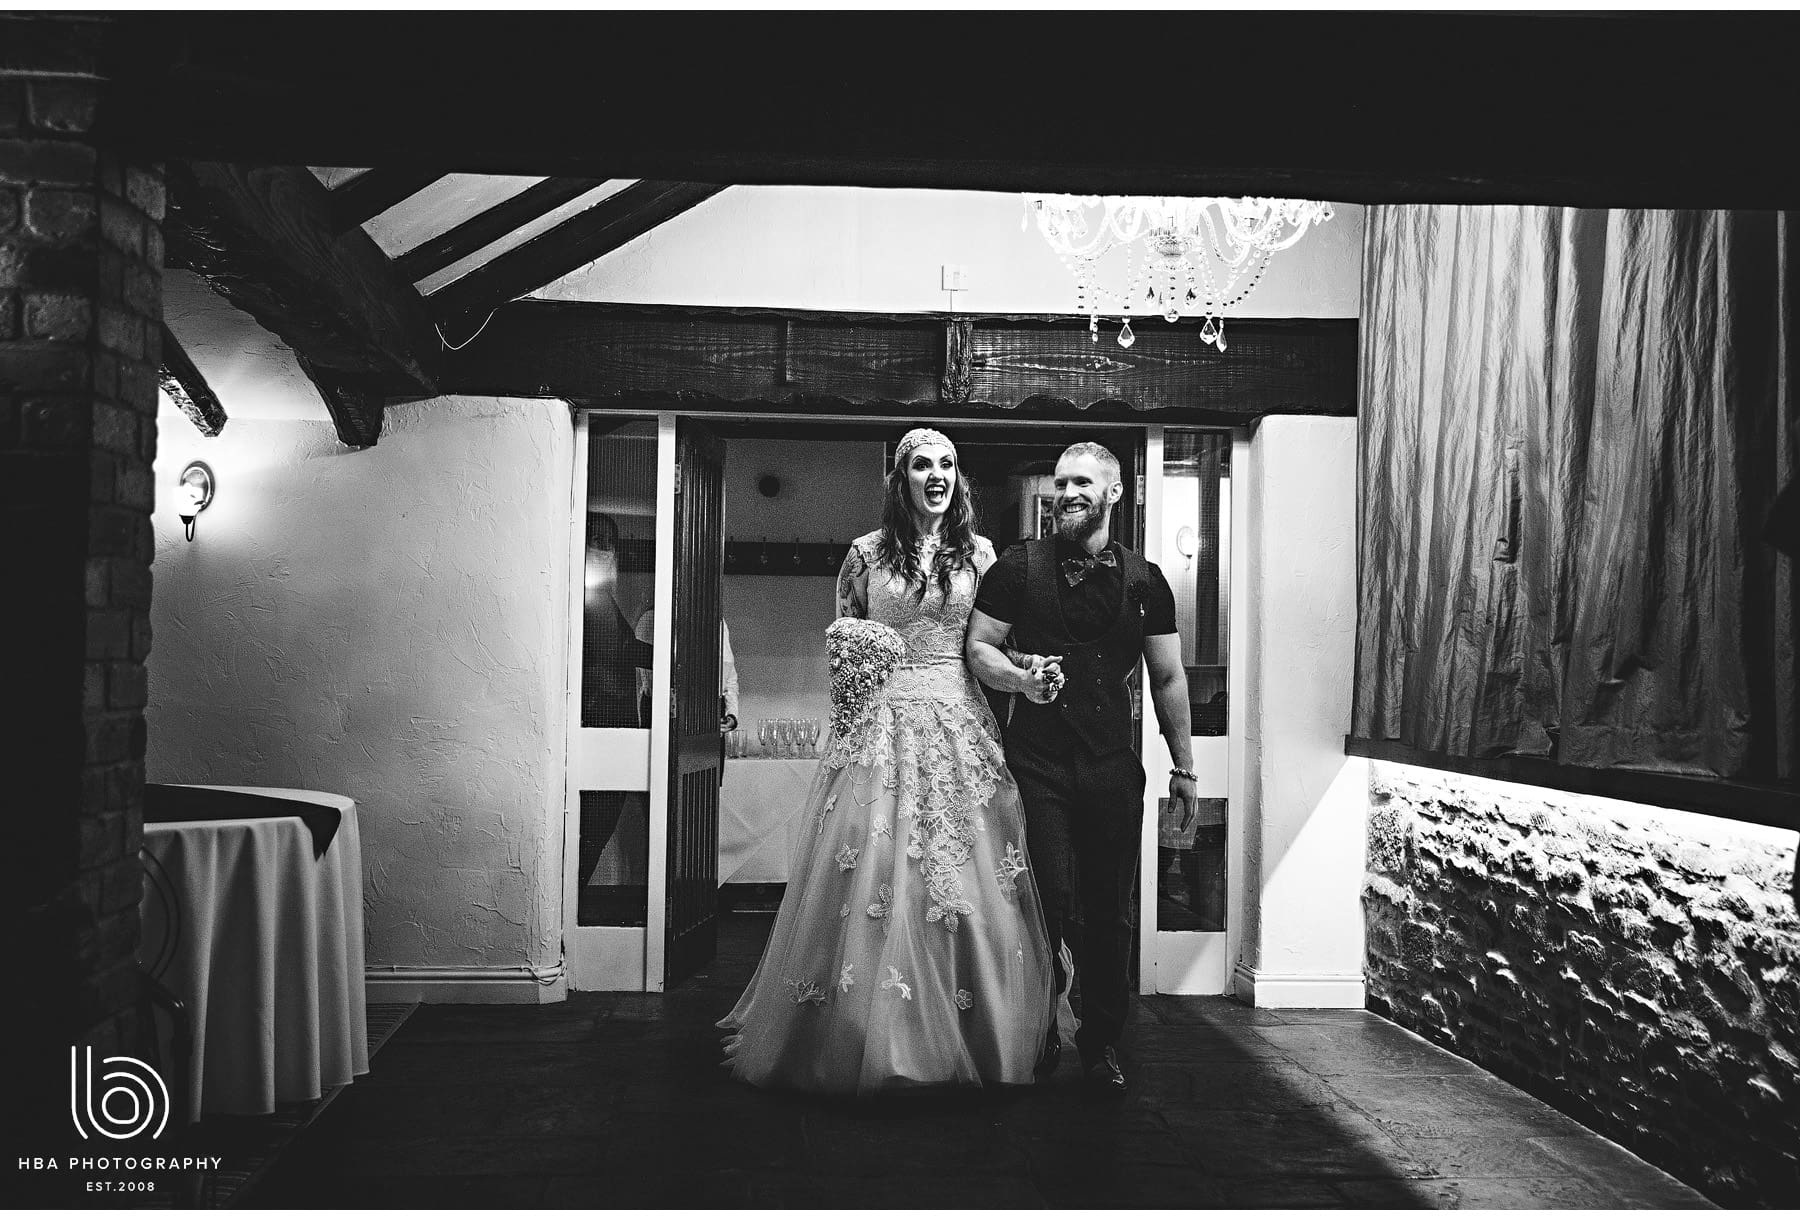 the bride & groom walking into the ceremony